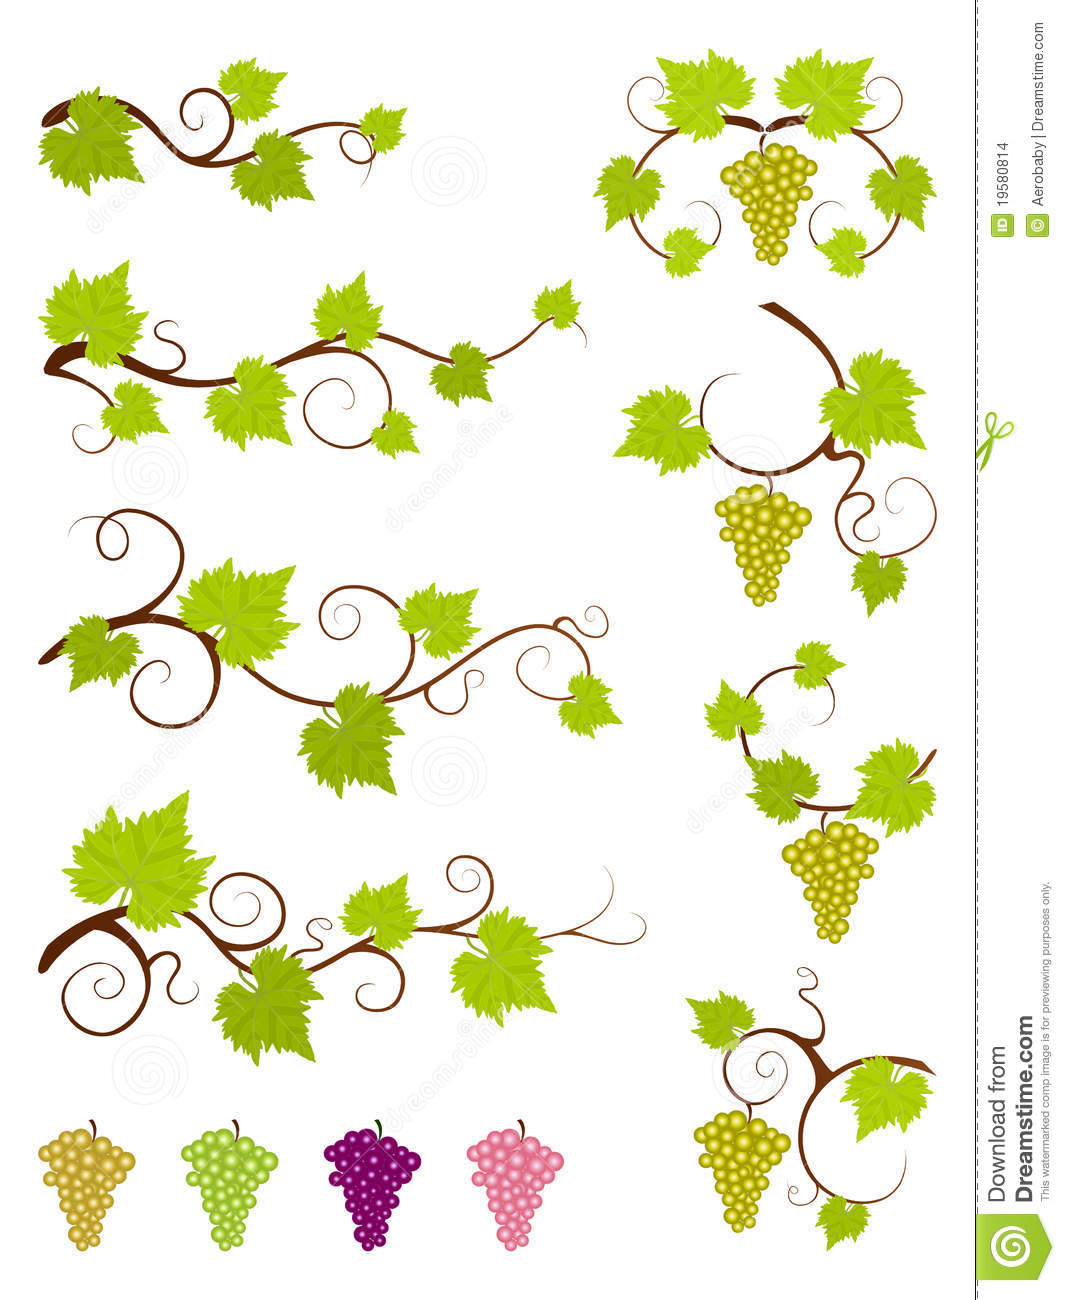 Grape Vines Design Elements Set. Stock Images - Image: 19580814